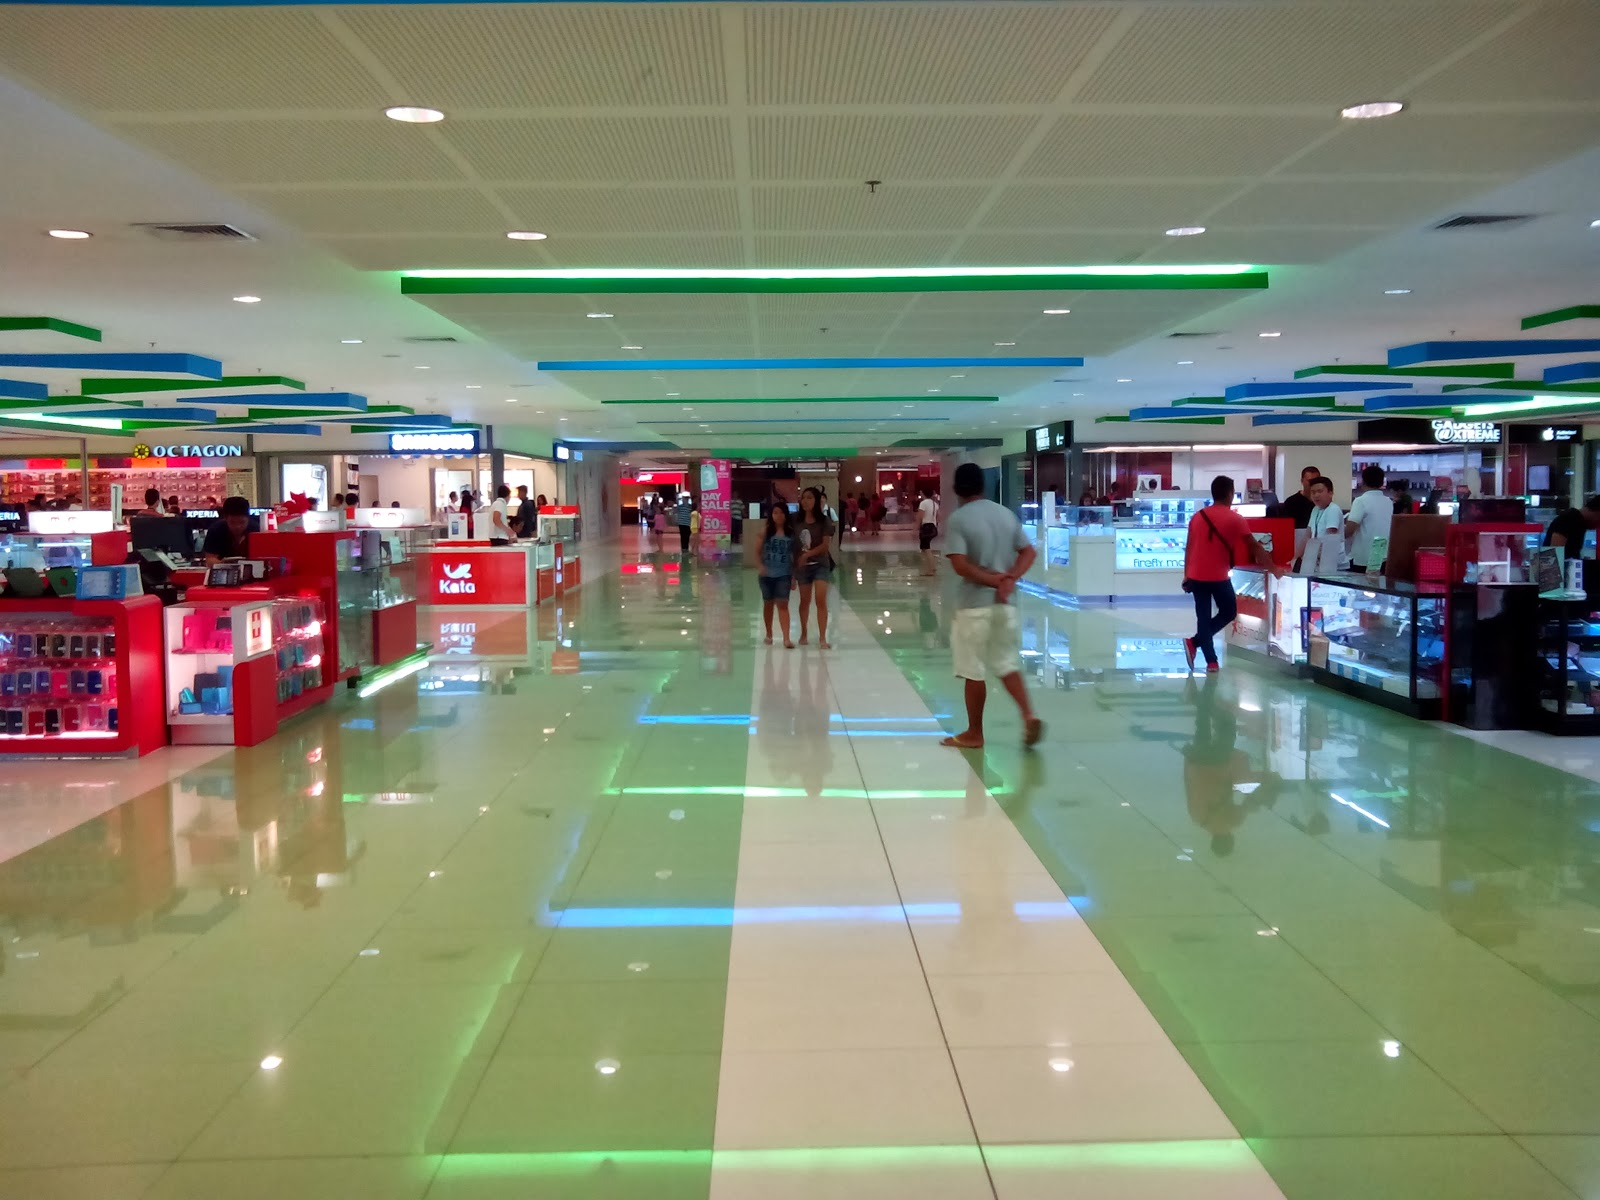 DTC Mobile GT15 Astroid Fiesta Sample Shot - Inside the mall